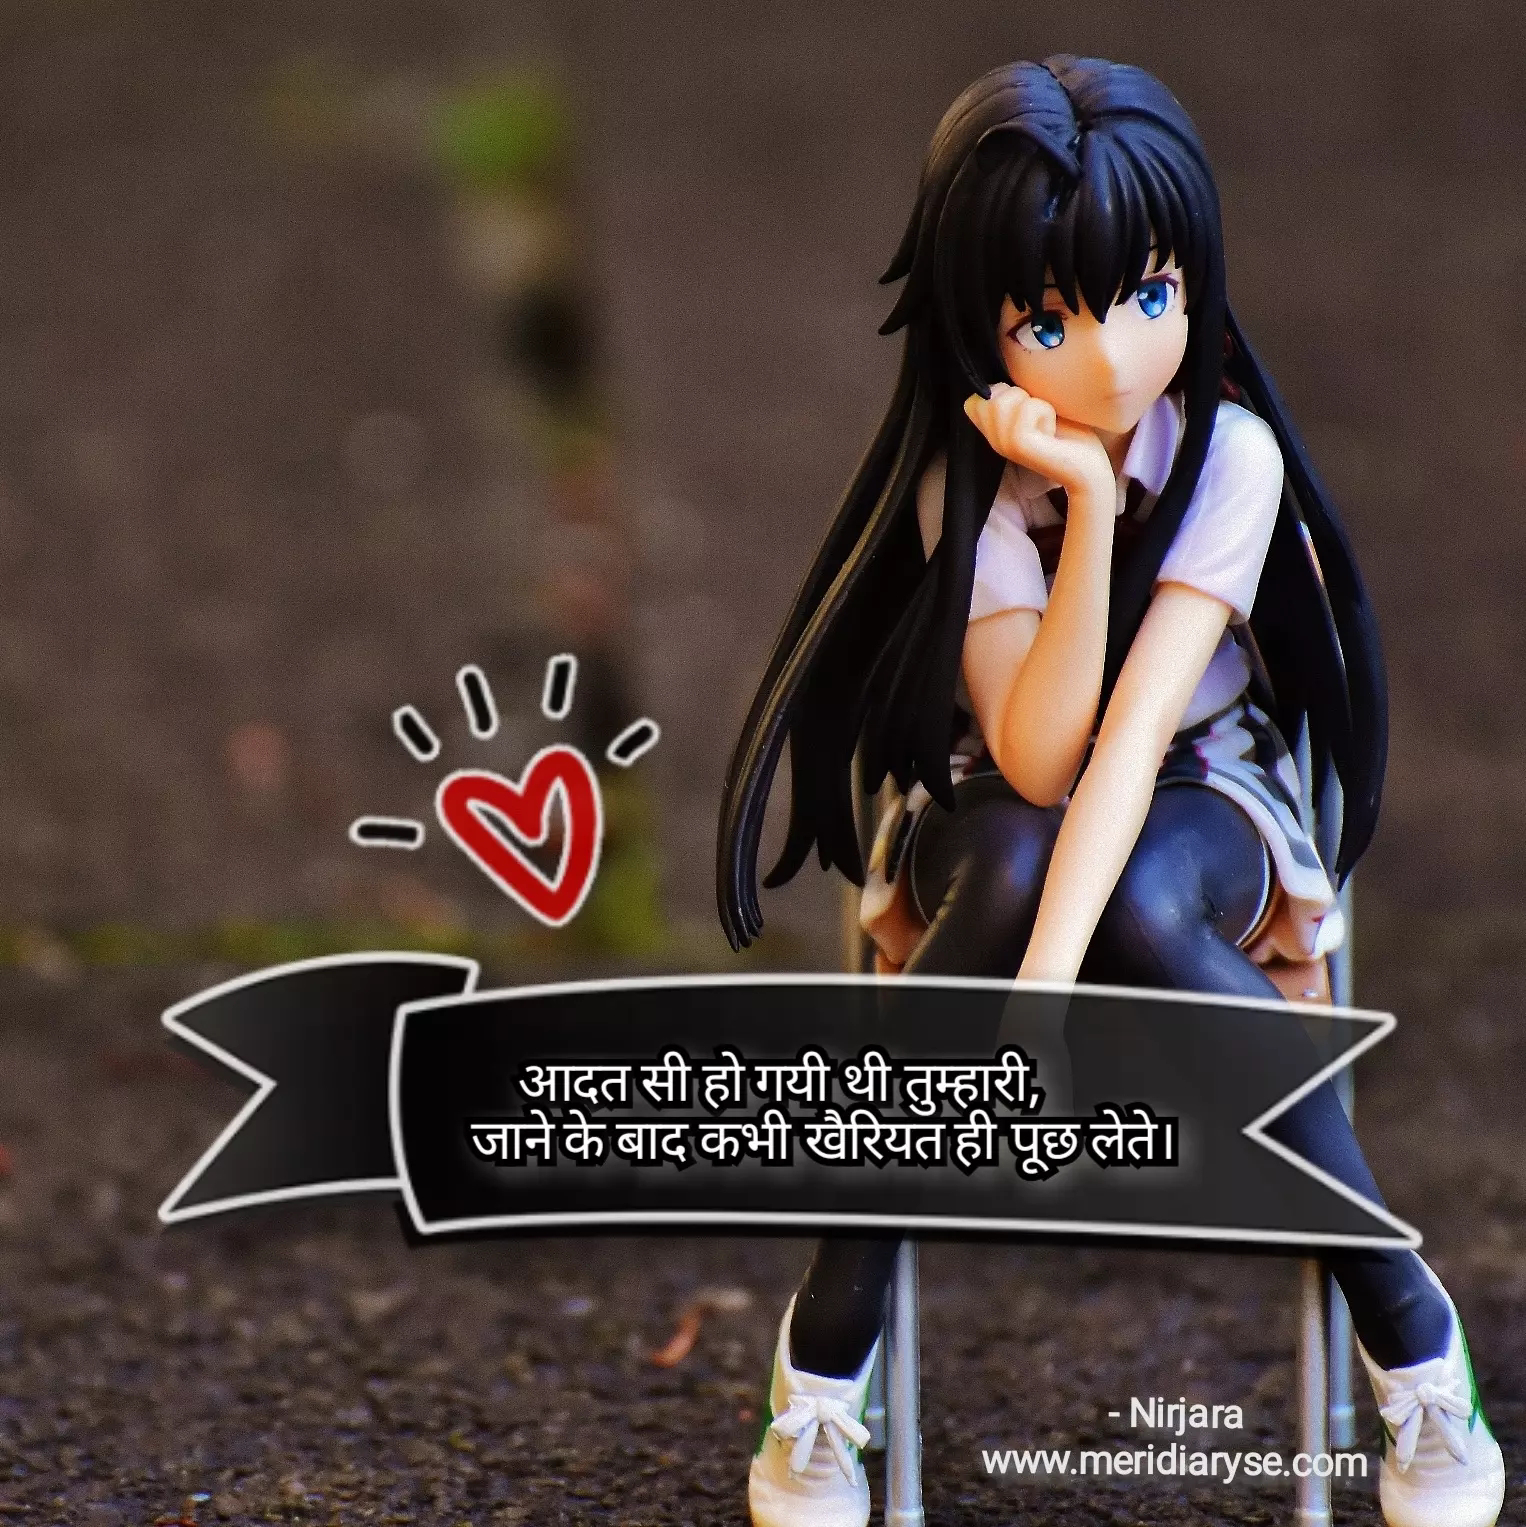 Alone Sad Quotes with background image